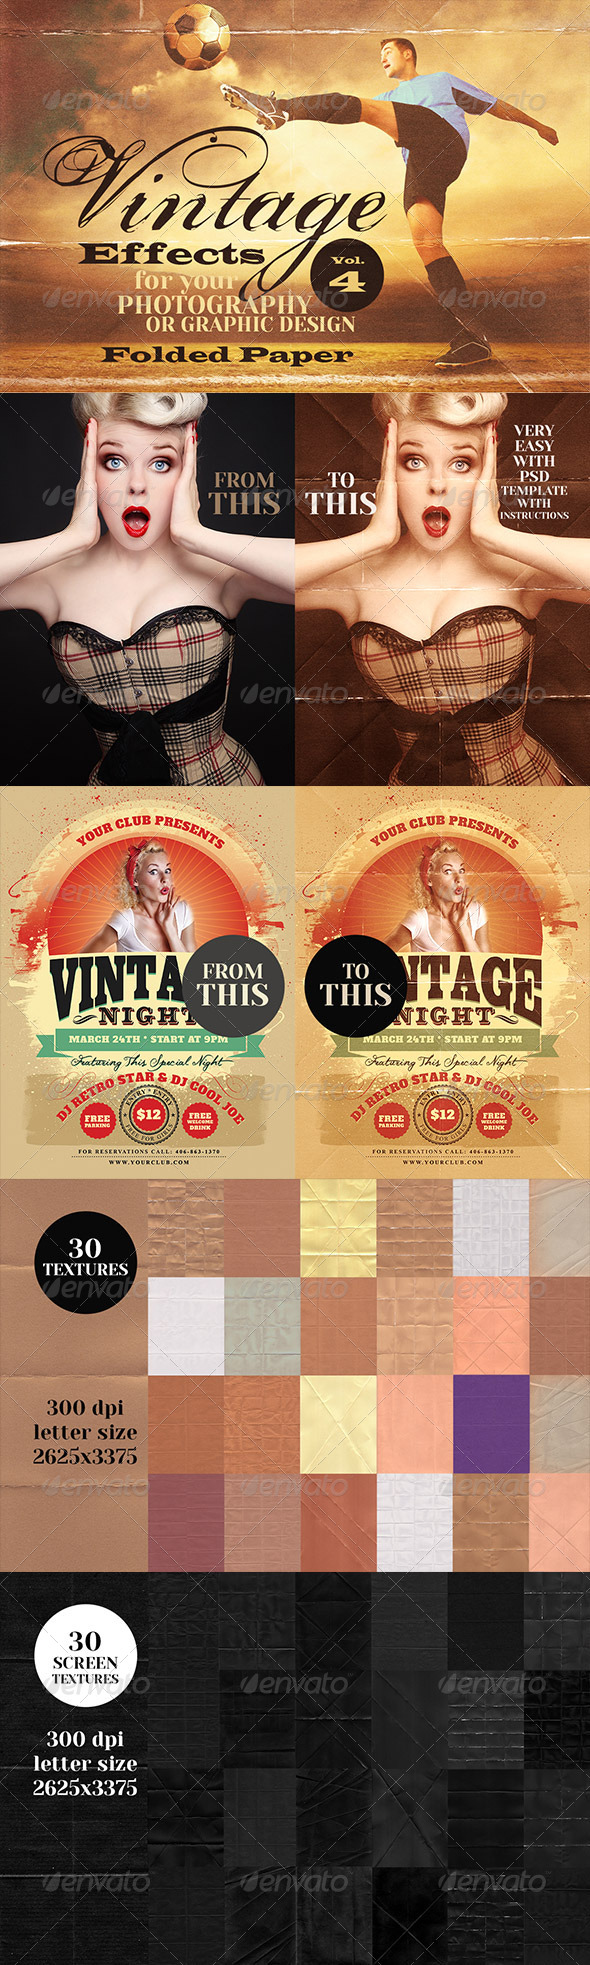 Vintage Effects for Photo, Designs 4 - Miscellaneous Photo Templates